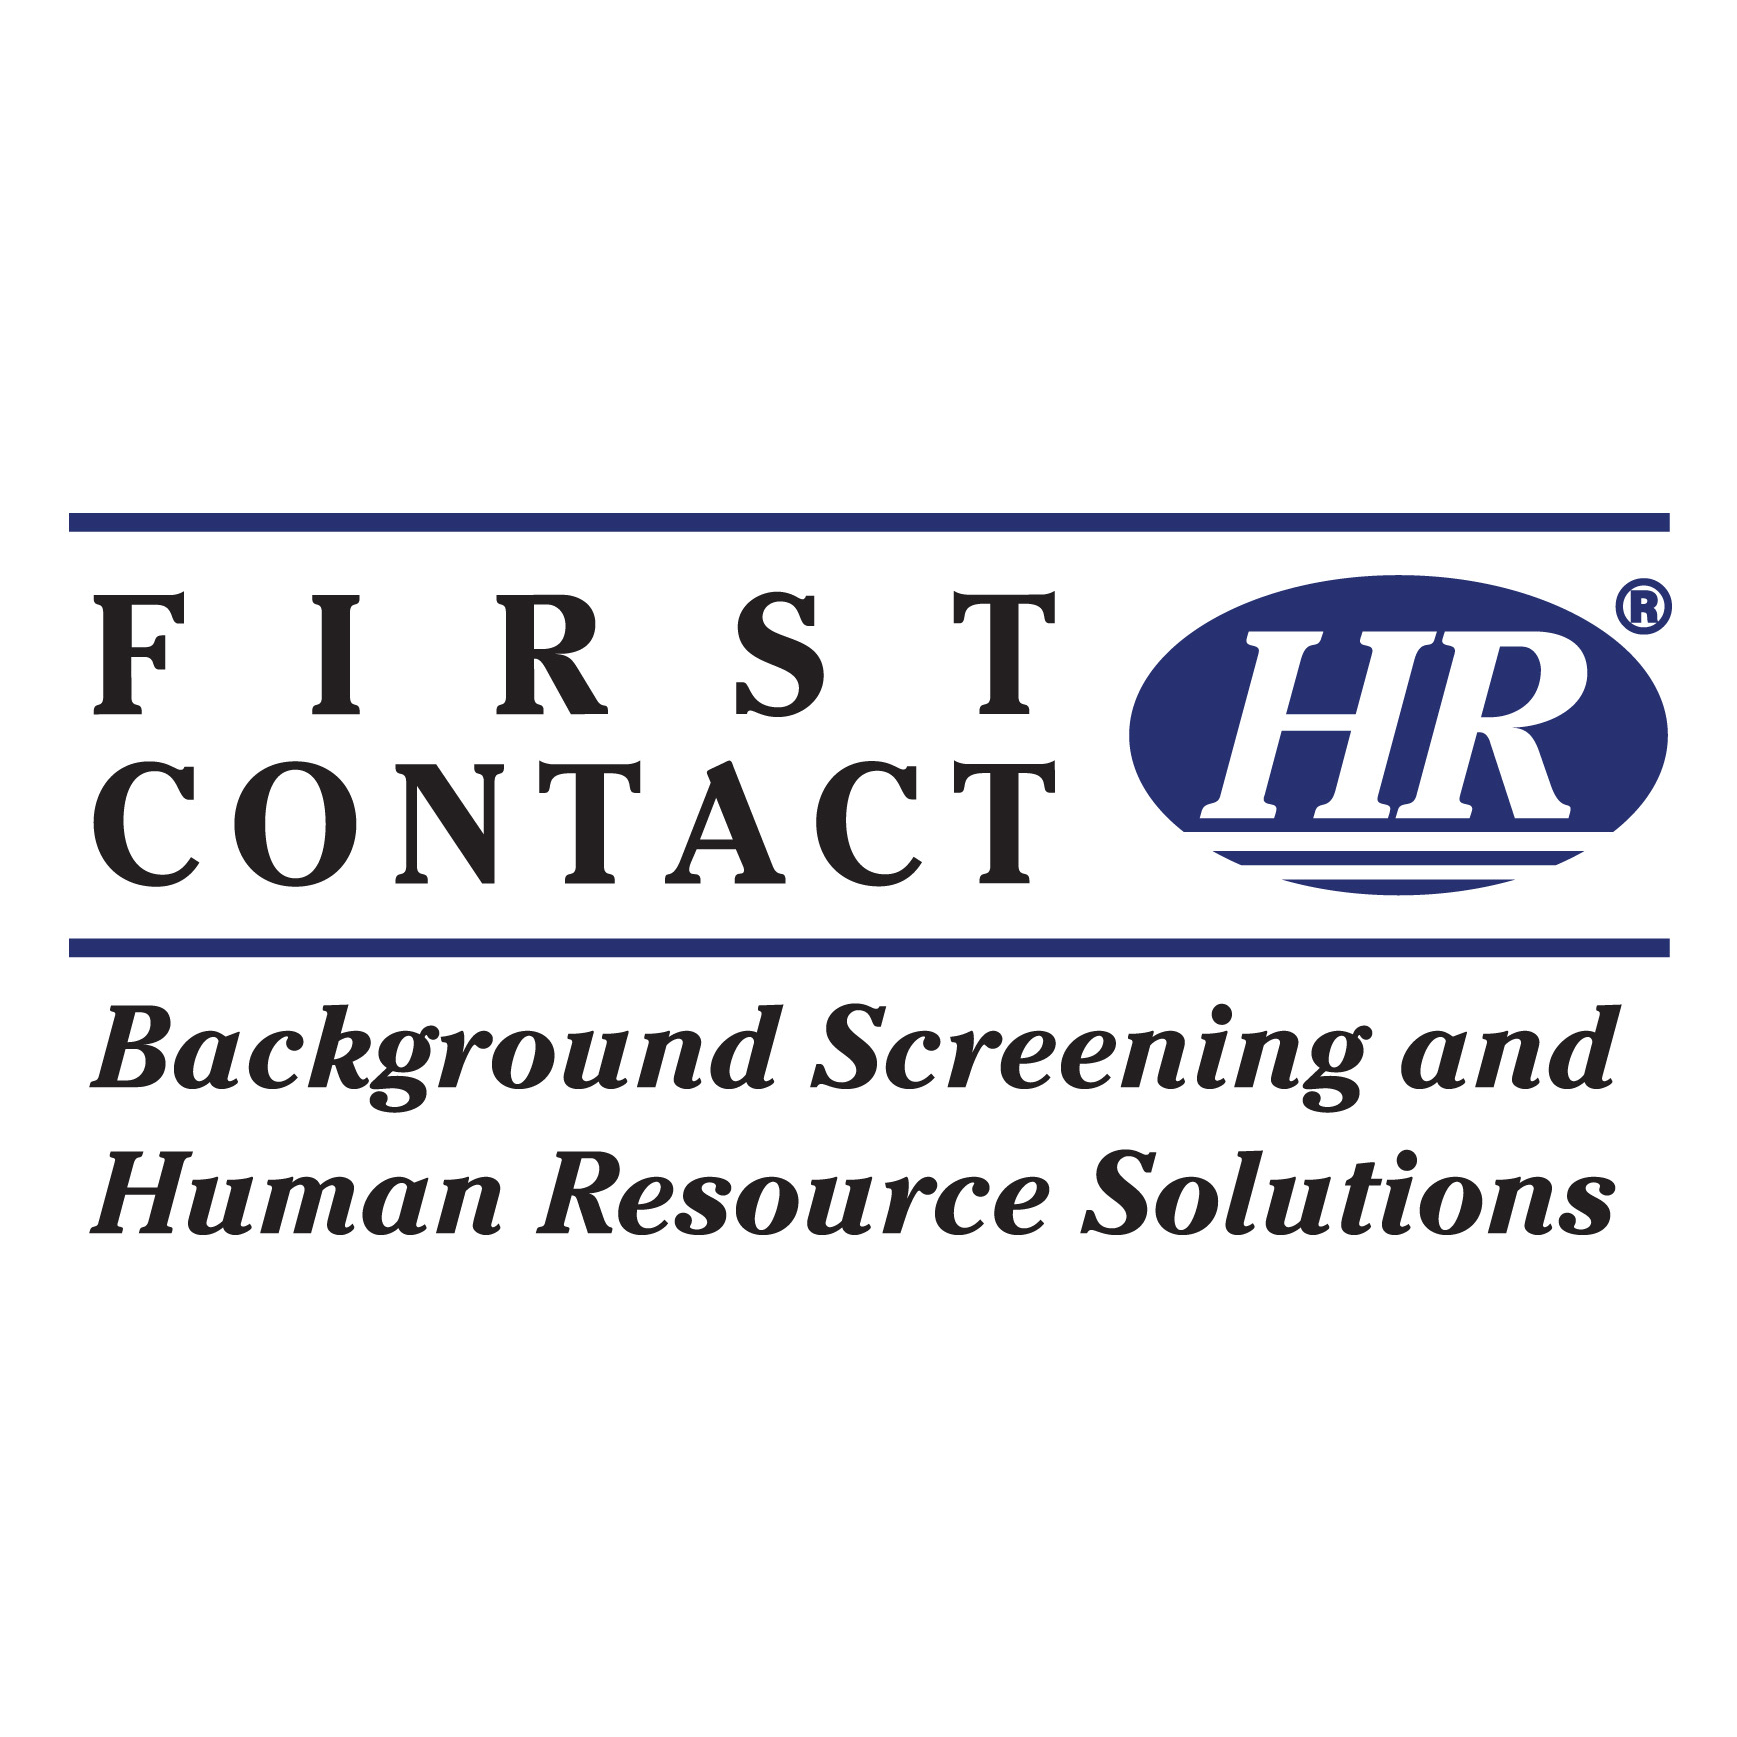 First Contact HR - Fort Washington, PA - Business Consulting